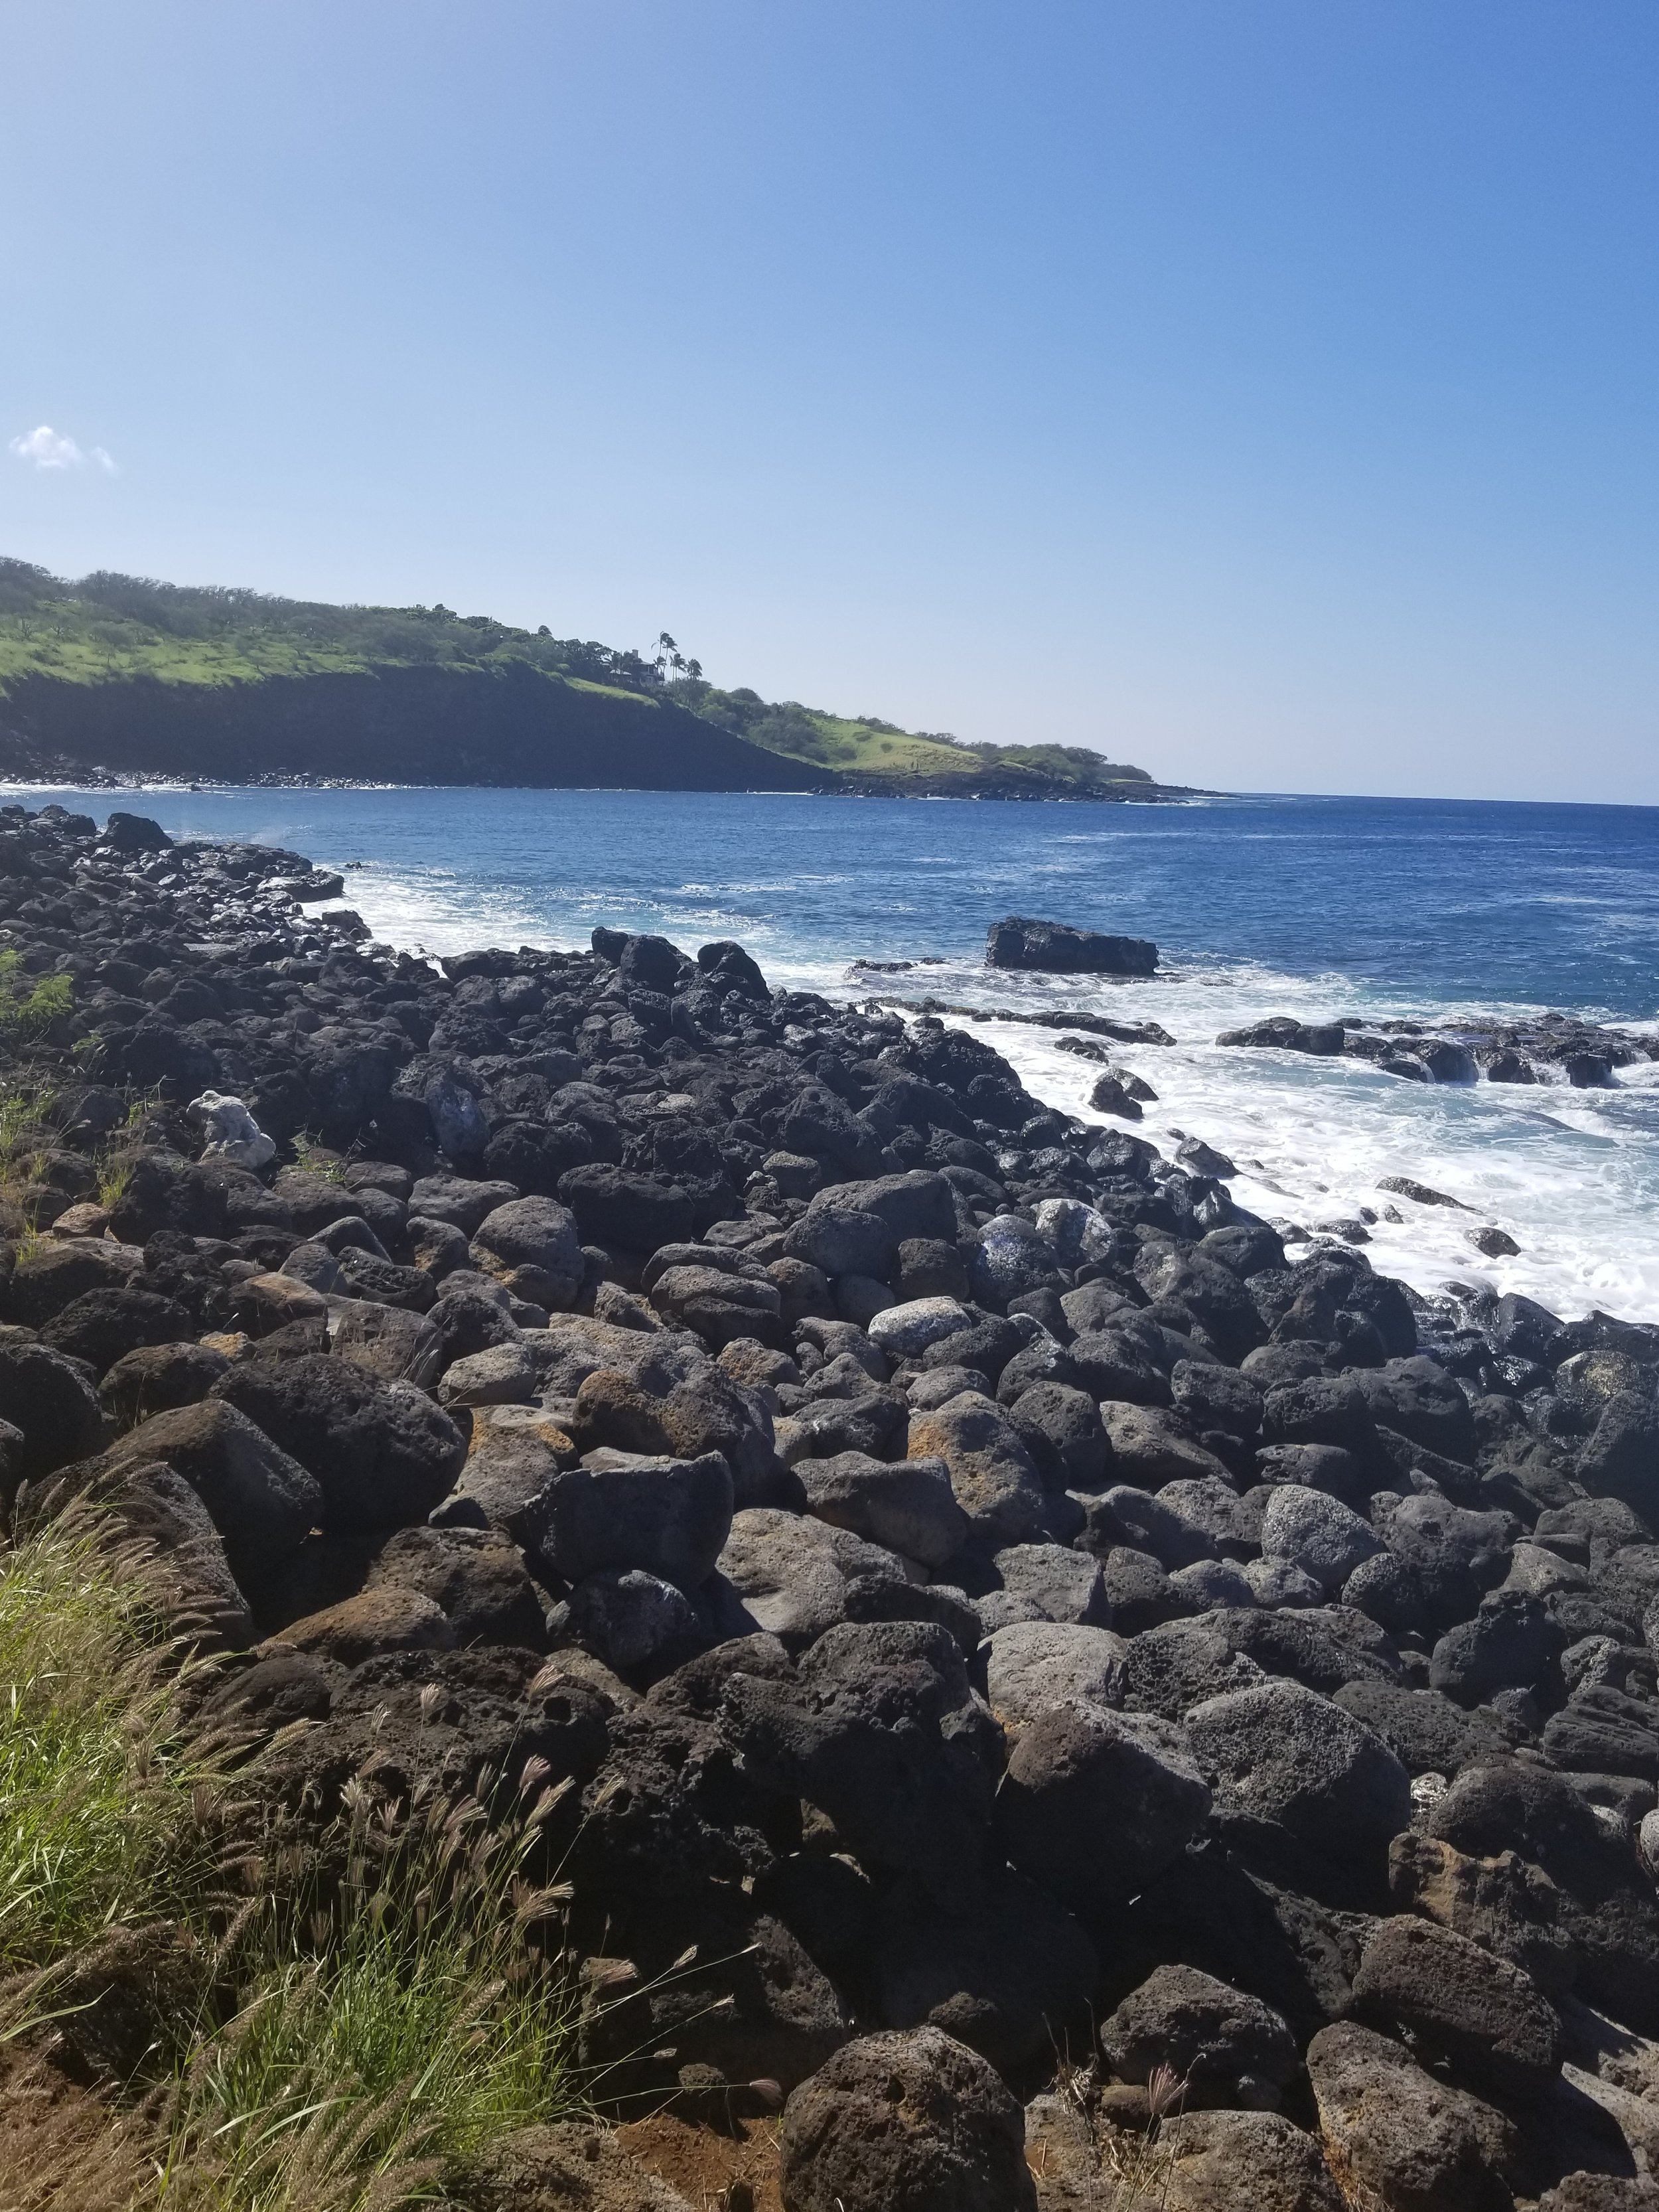 North Kohala Coastline, Hawaii Island